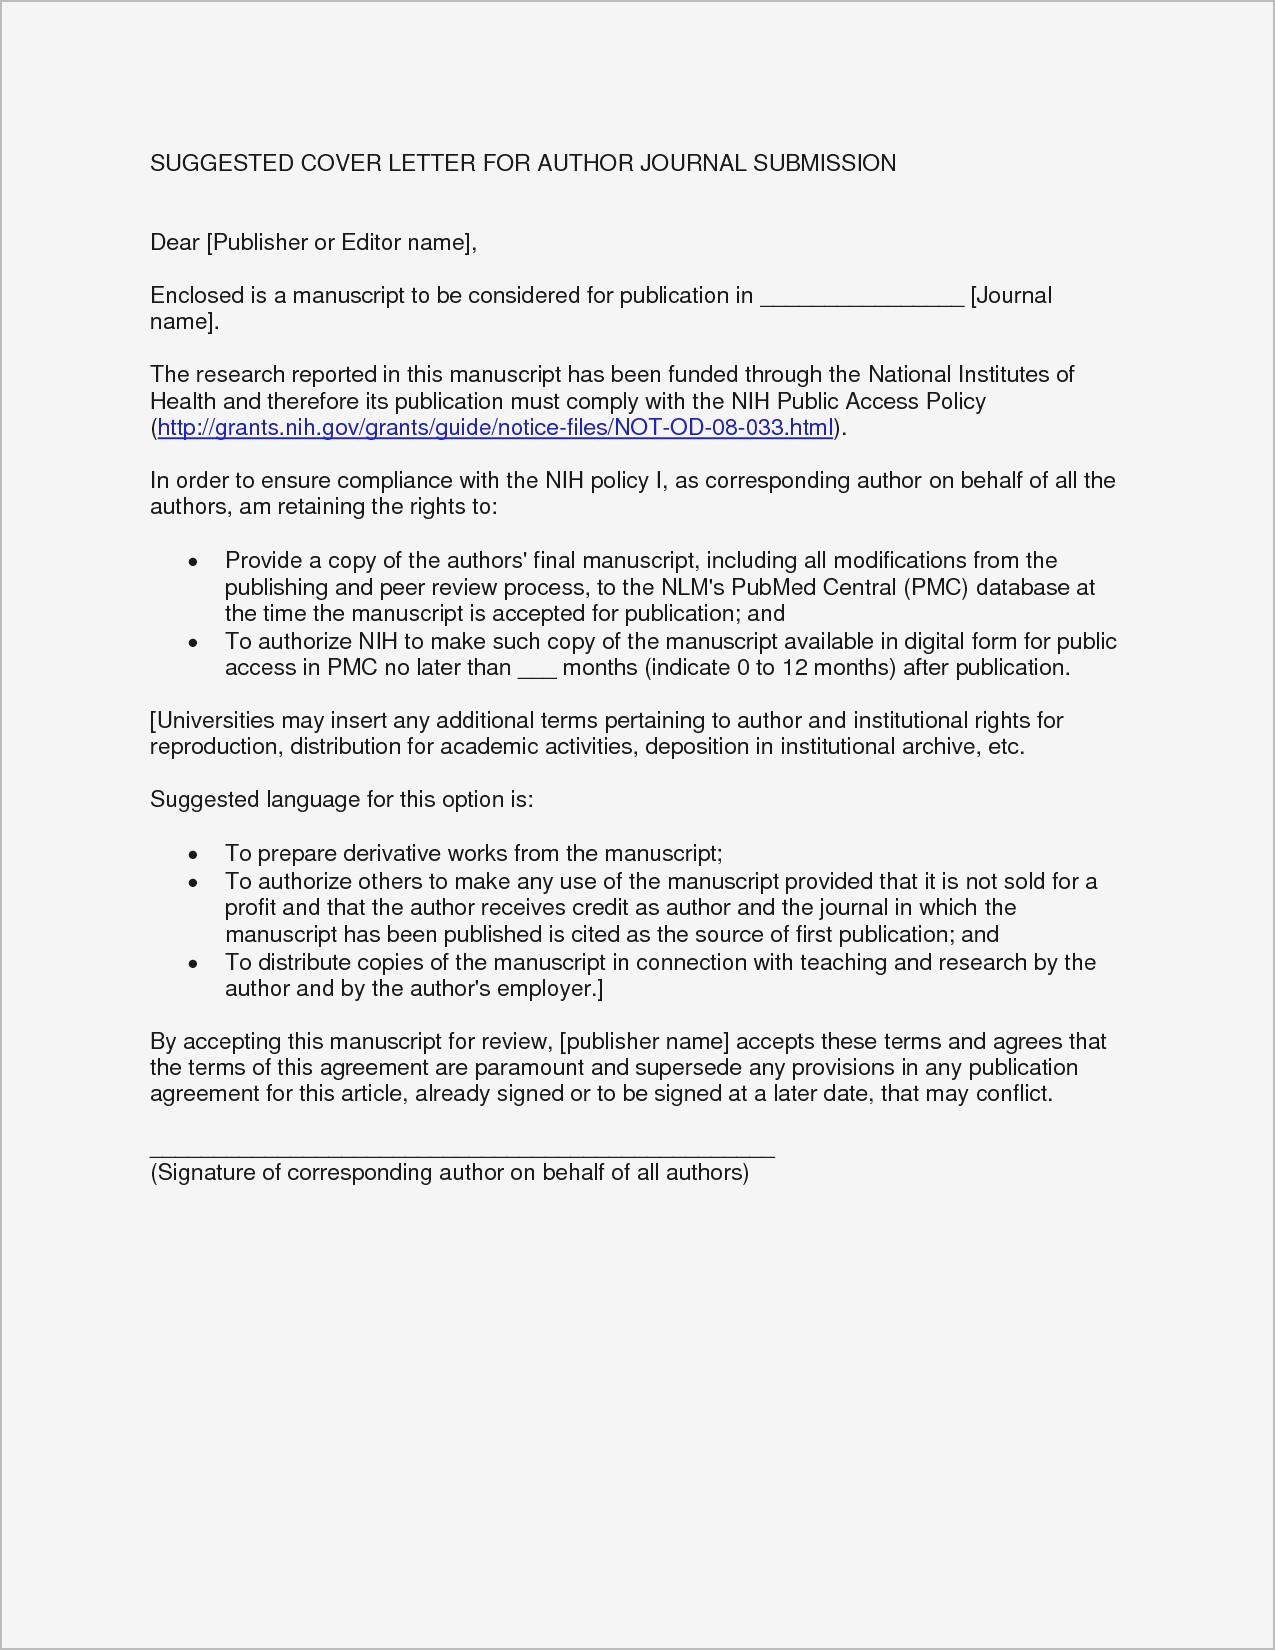 Public Health Cover Letter Template - Writing Business Requirements Template Best Fax Cover Letter